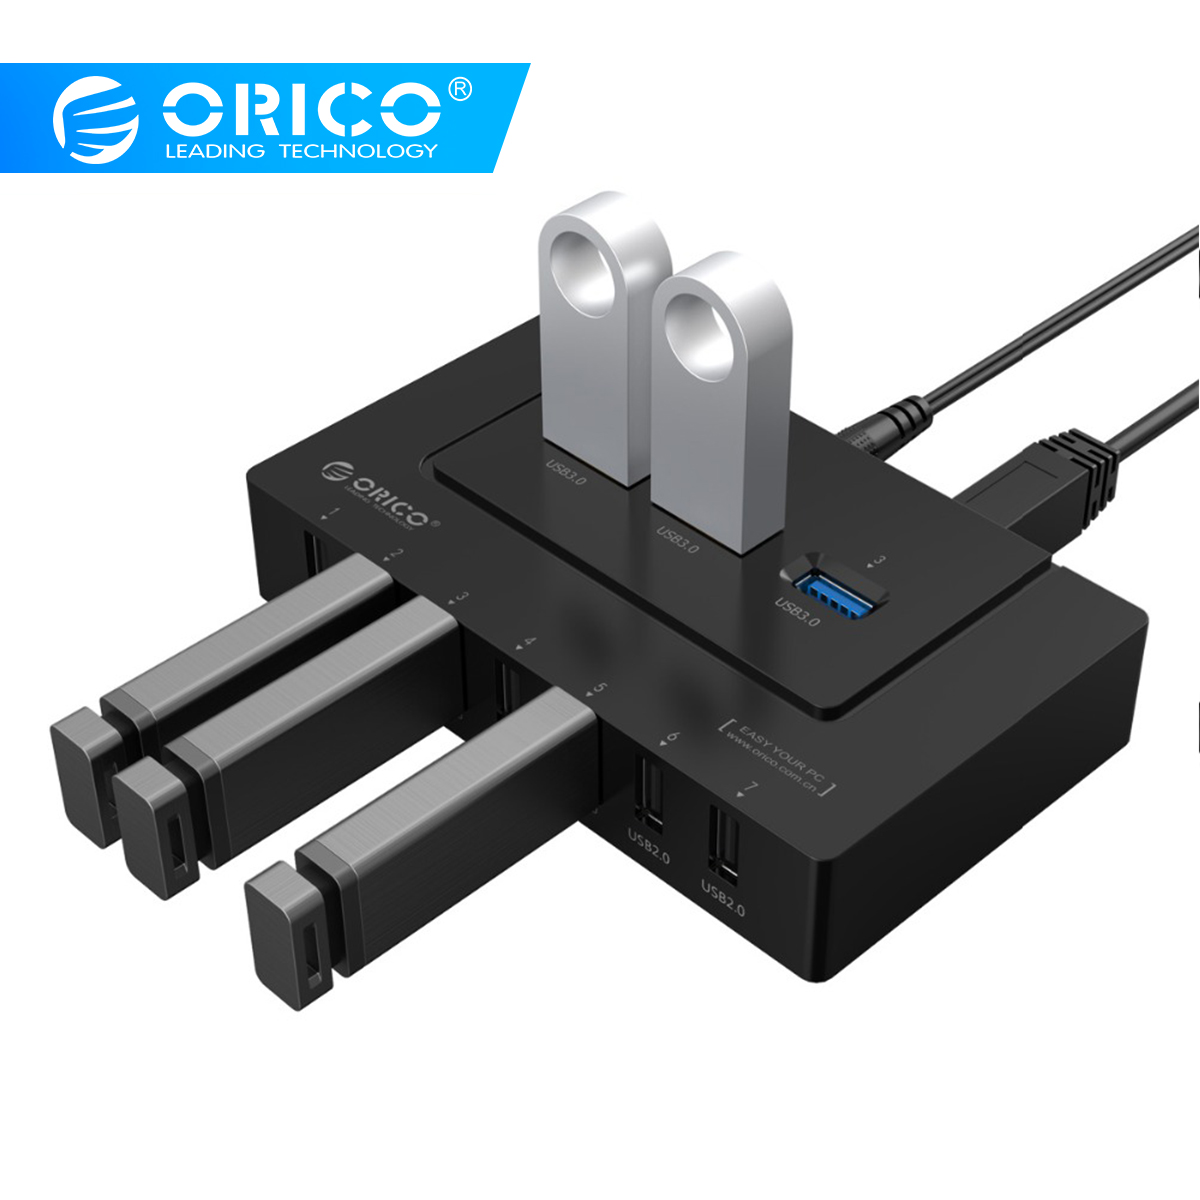 ORICO USB 2.0/3.0 HUB 10 Ports USB HUB 5Gbps Power Adapter High Speed  Splitter Adapter For PC LaptopNotebook-Black(H9910-U3)